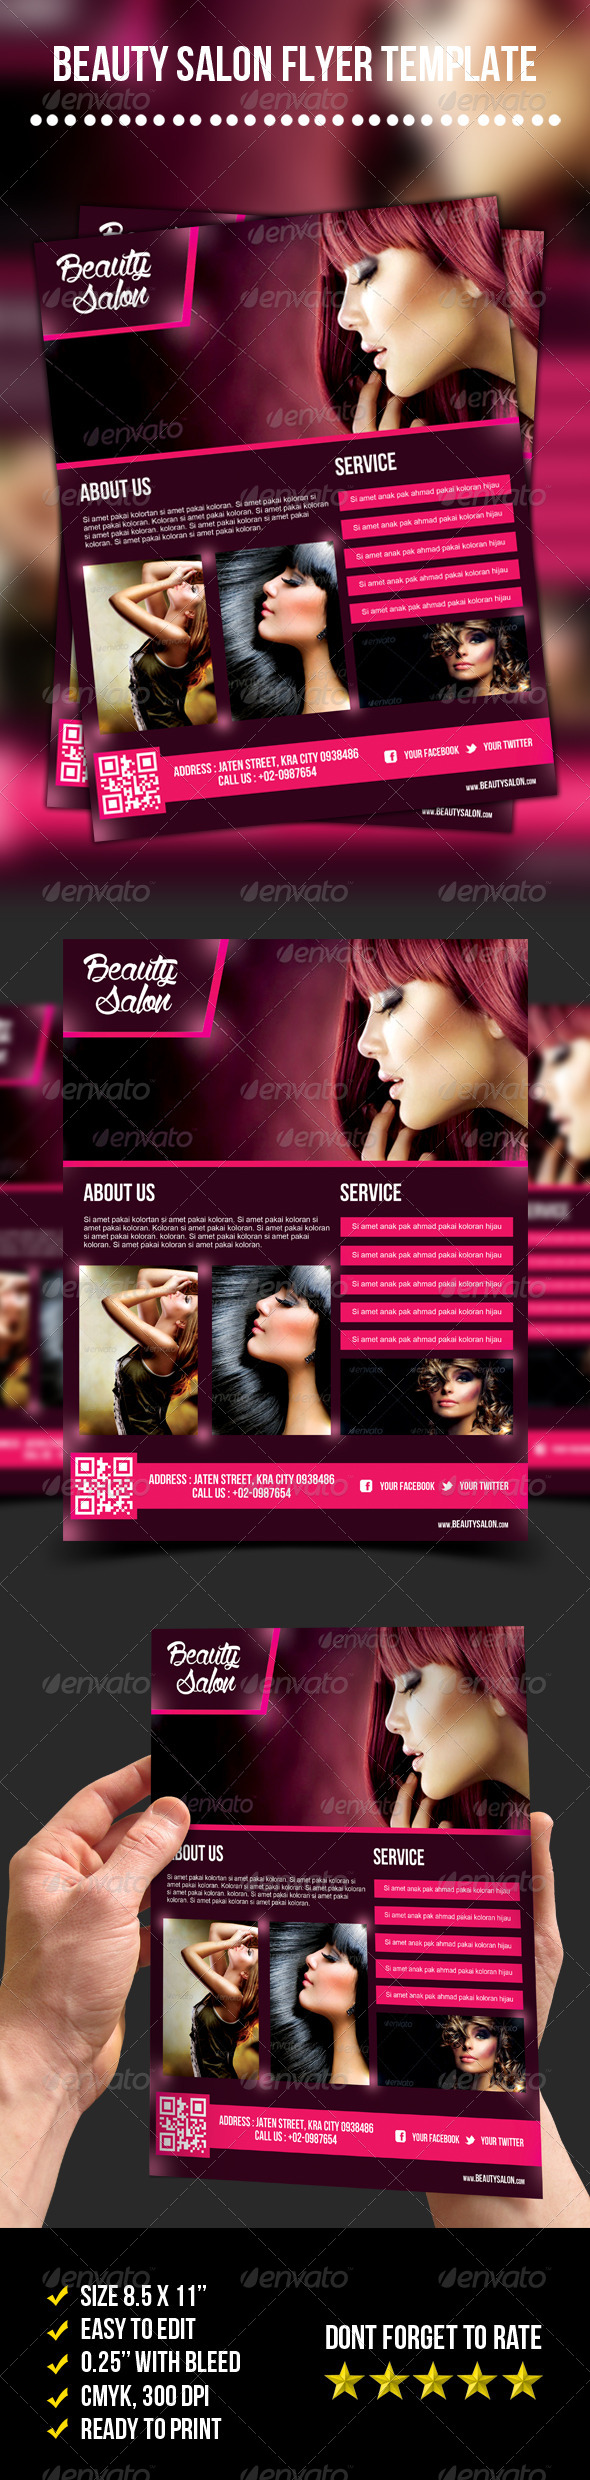 Beauty Salon Flyer By Meisuseno